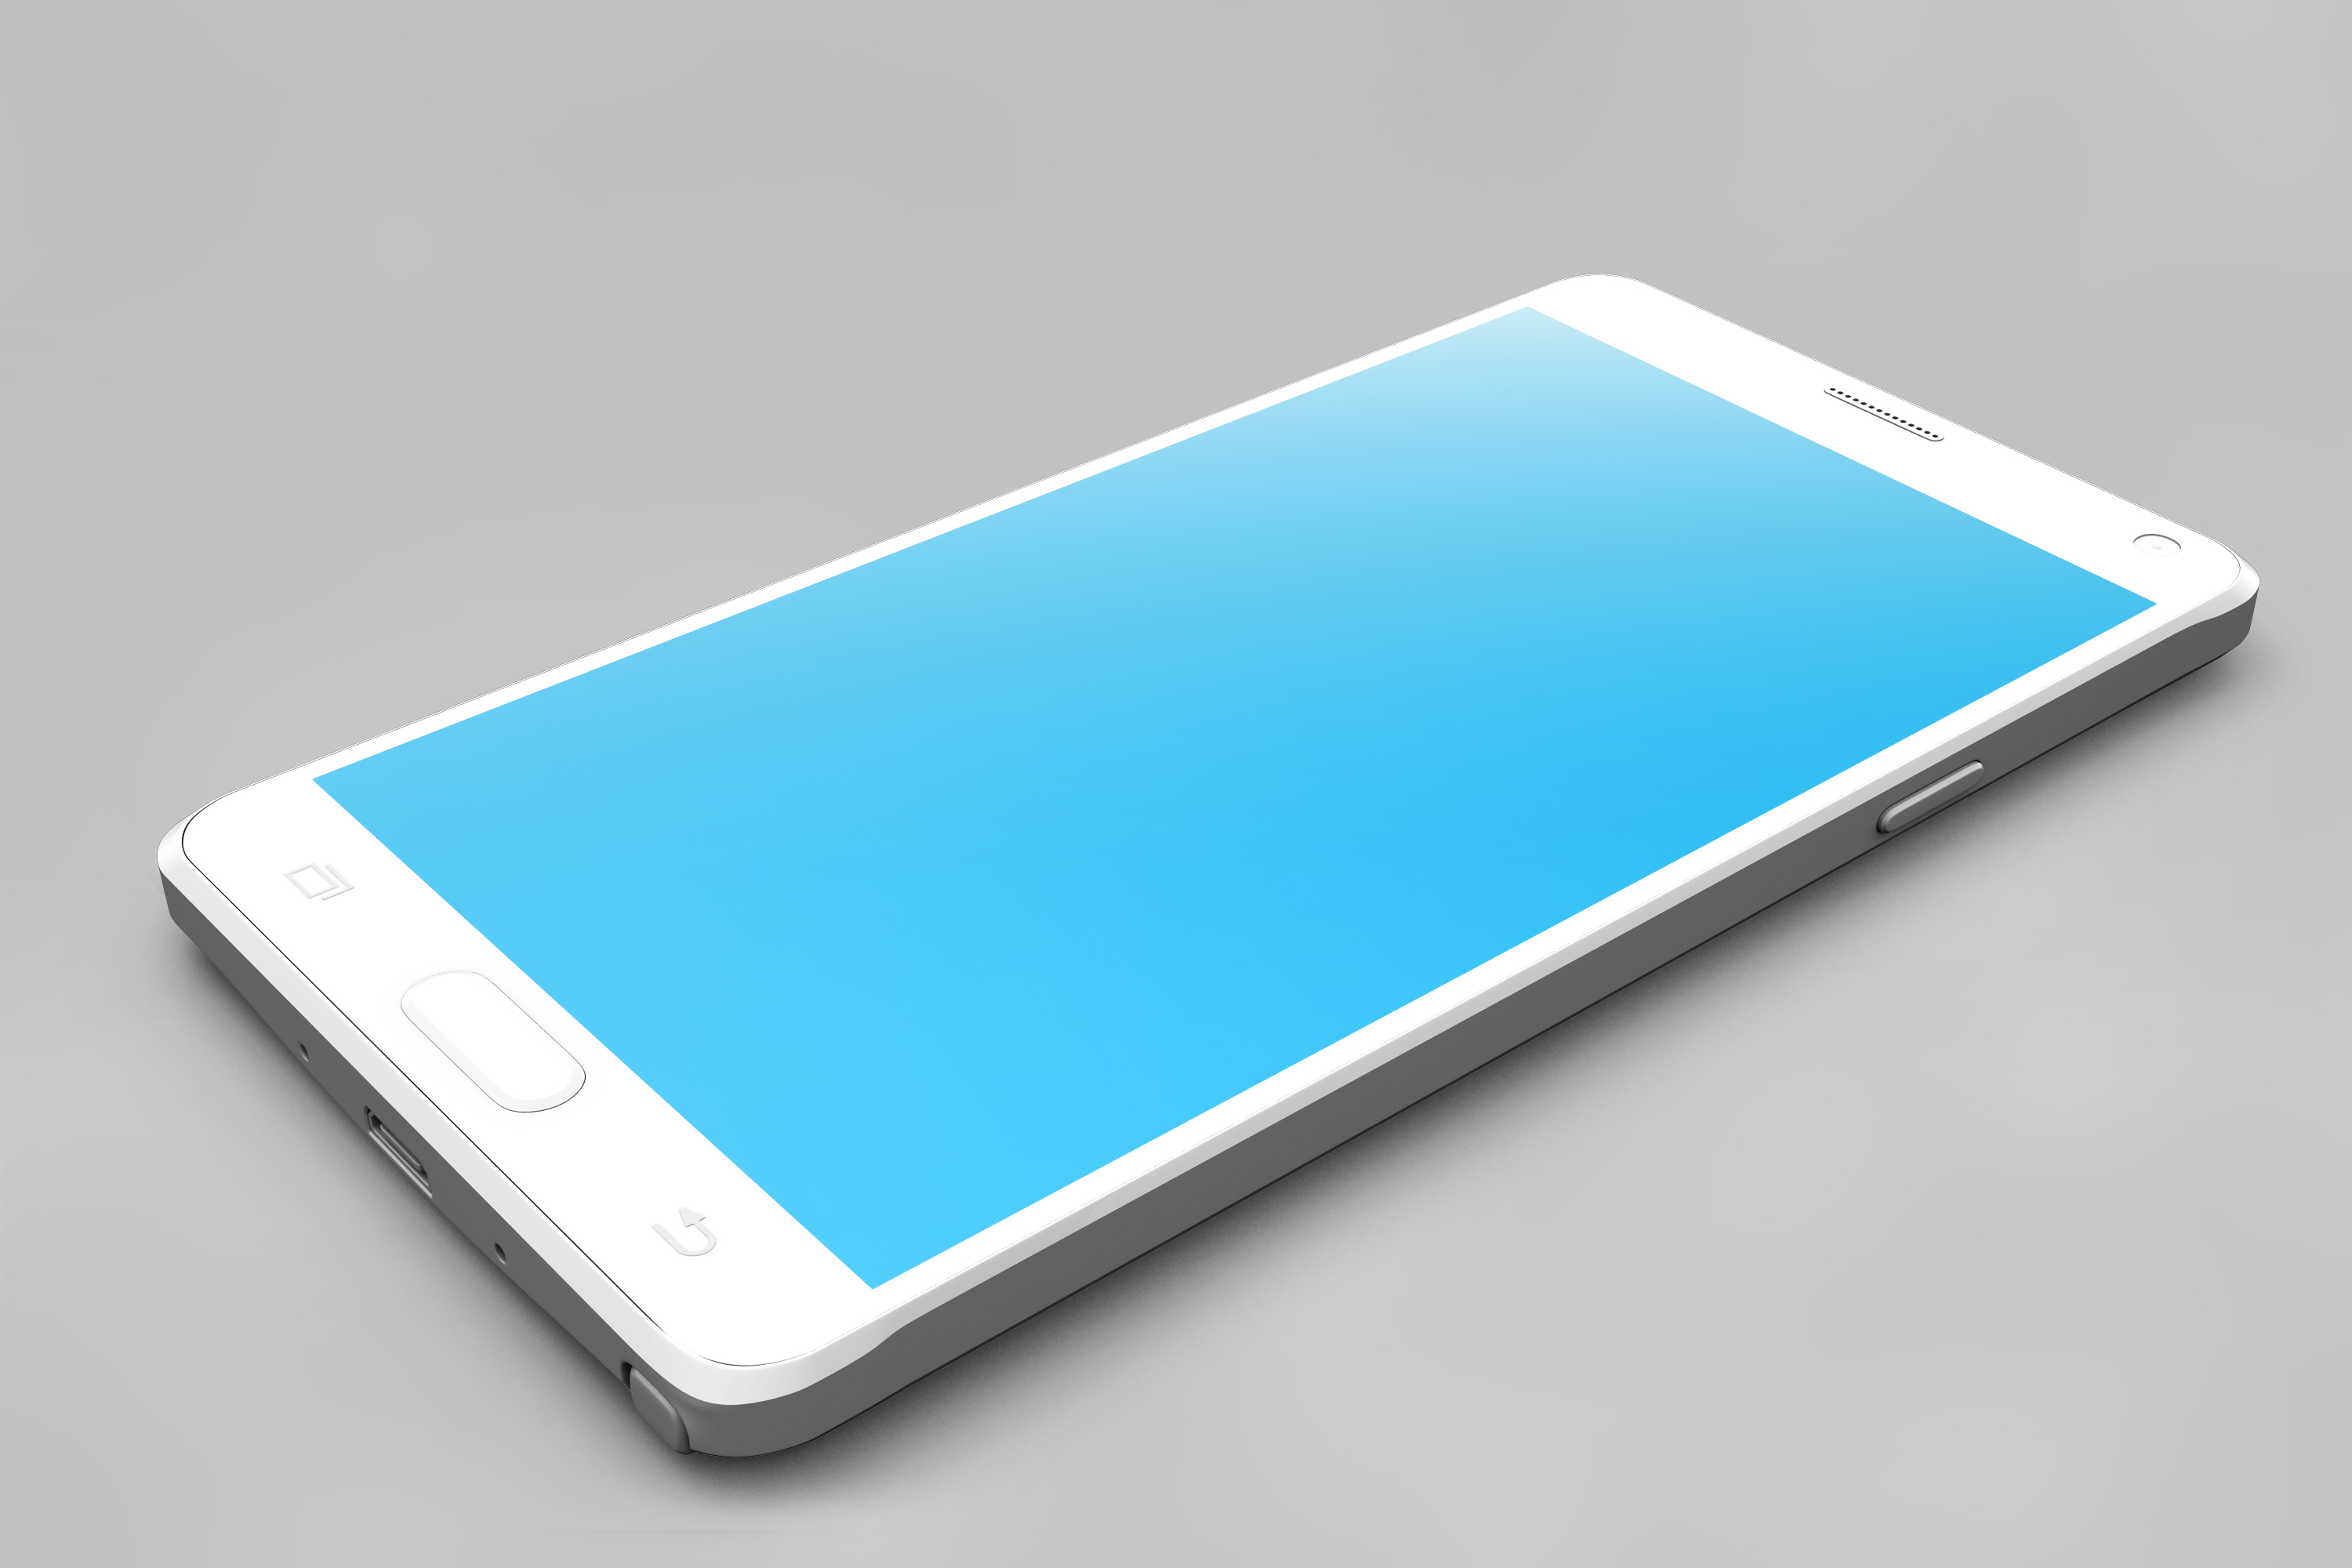 Samsung Galaxy Note 4 Mock-up example image 9